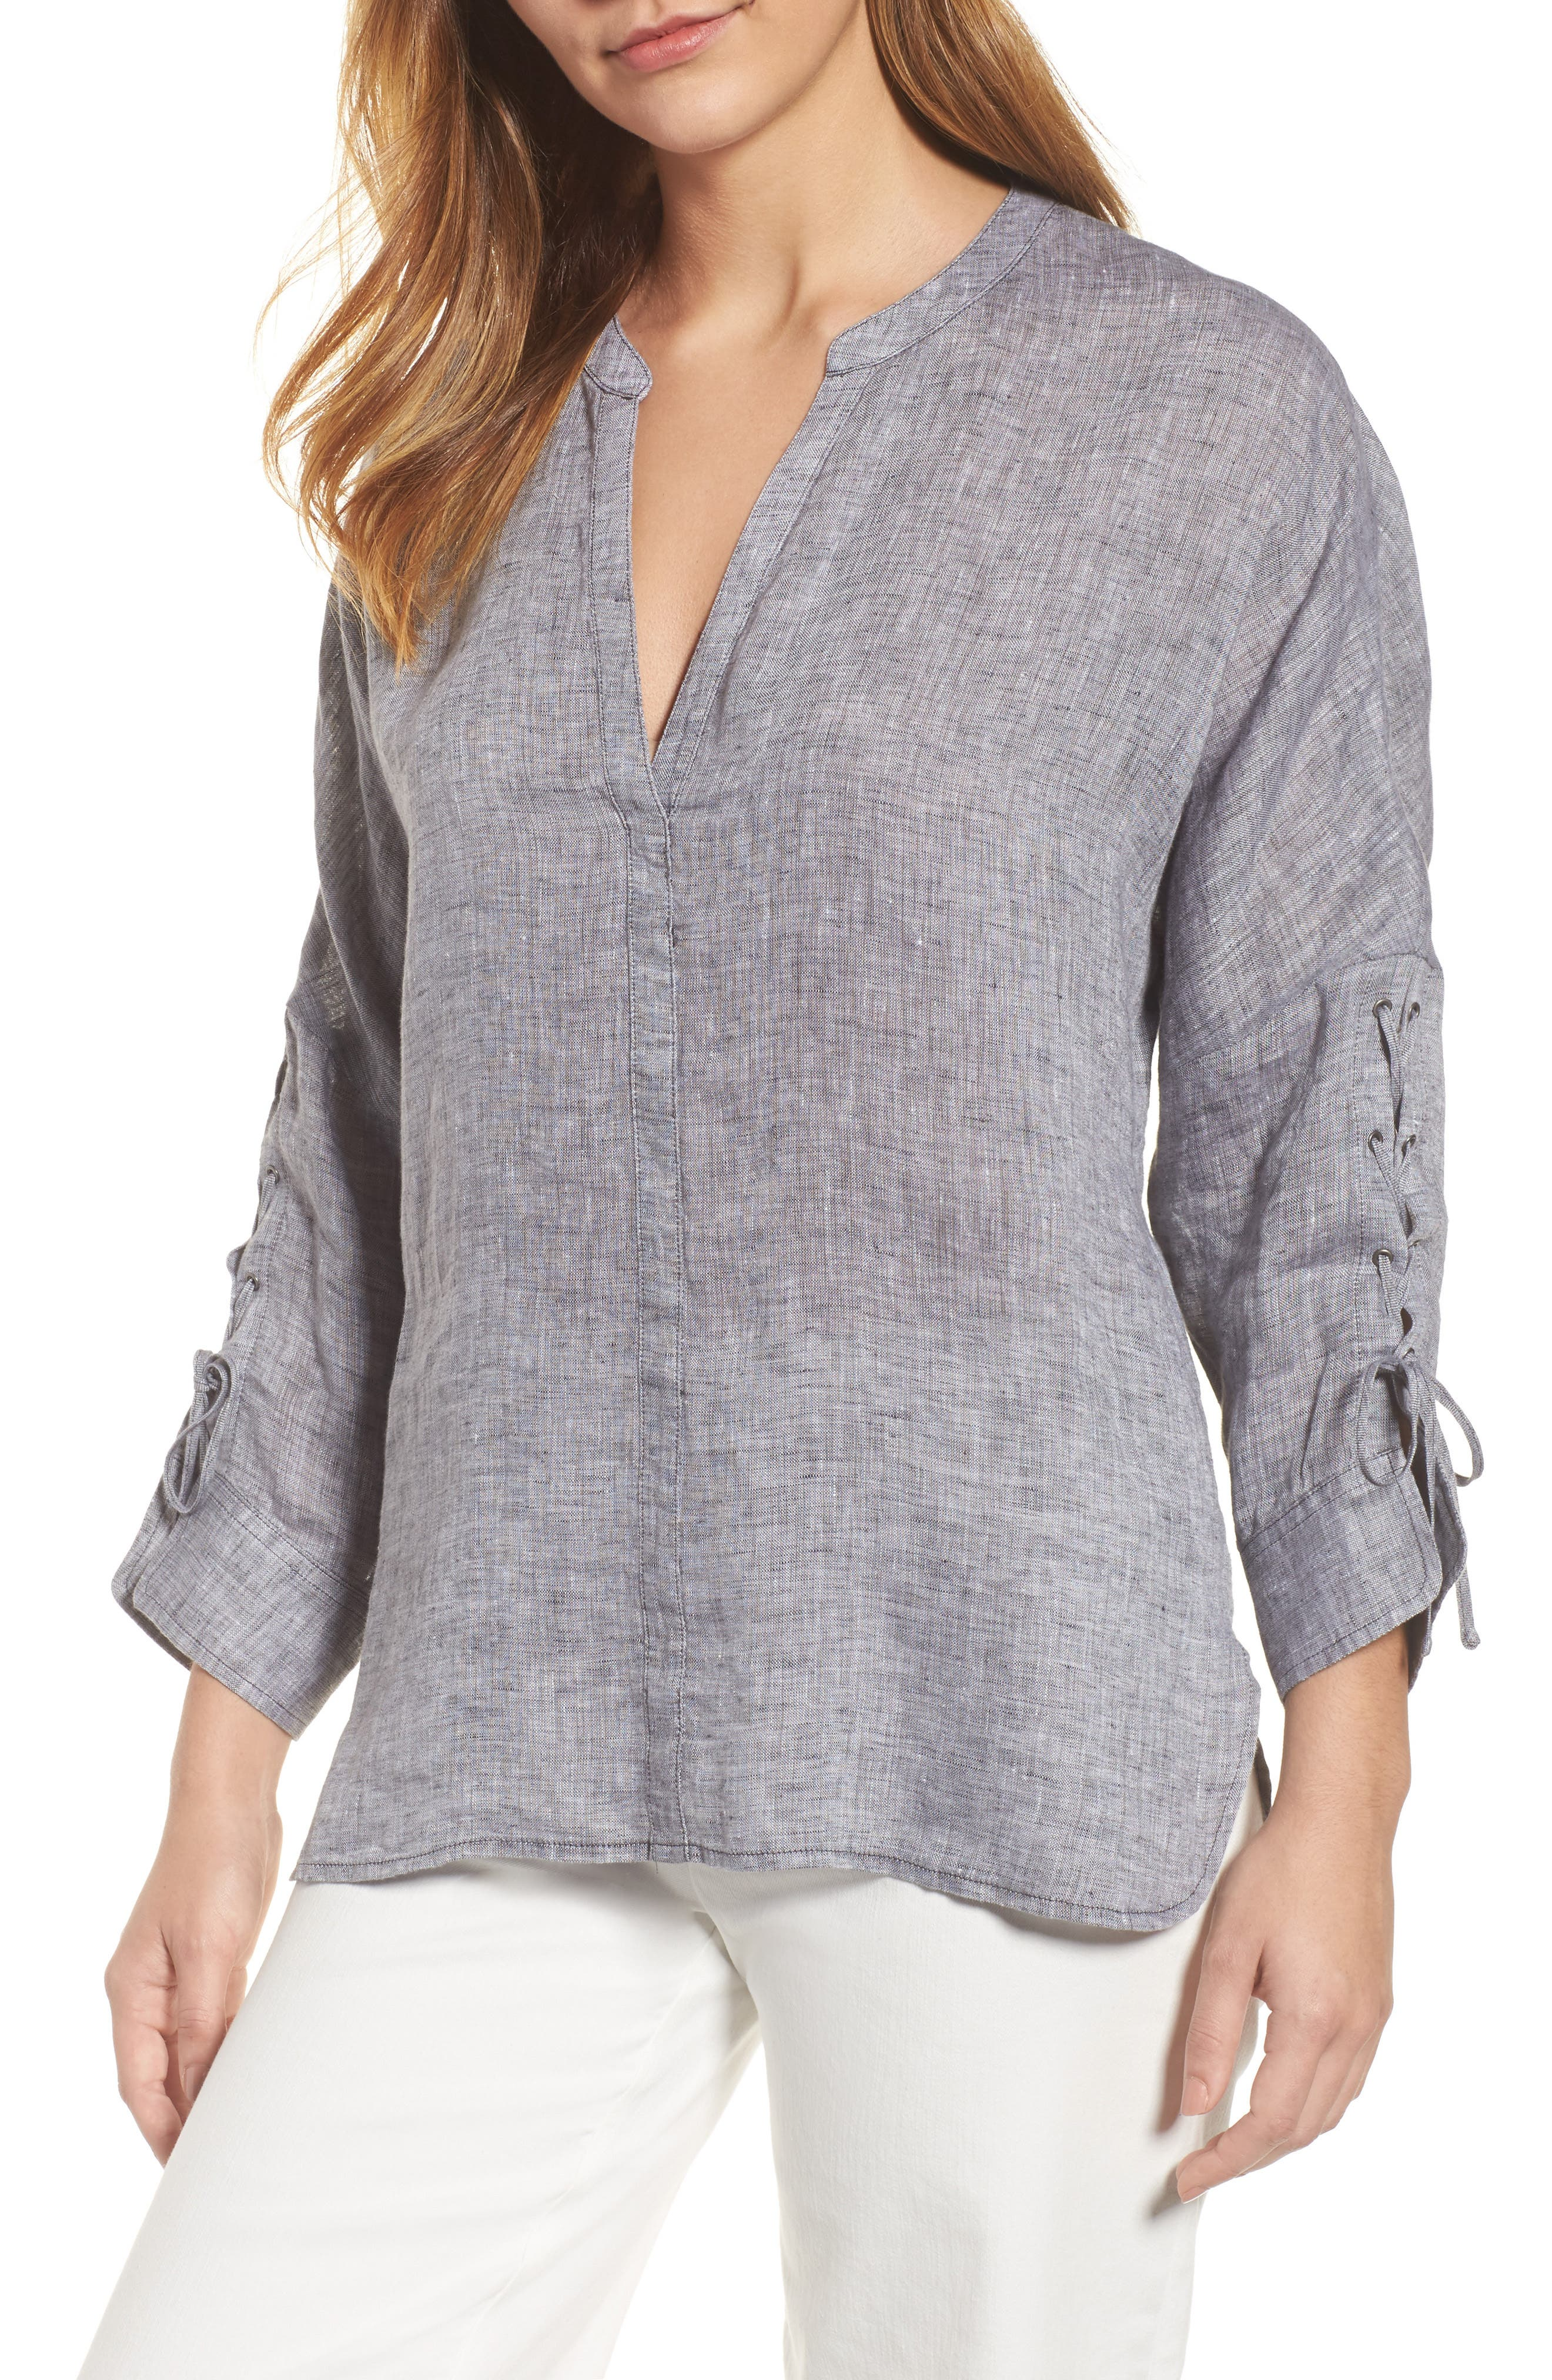 NIC + ZOE Cliff View Linen Top,                         Main,                         color,